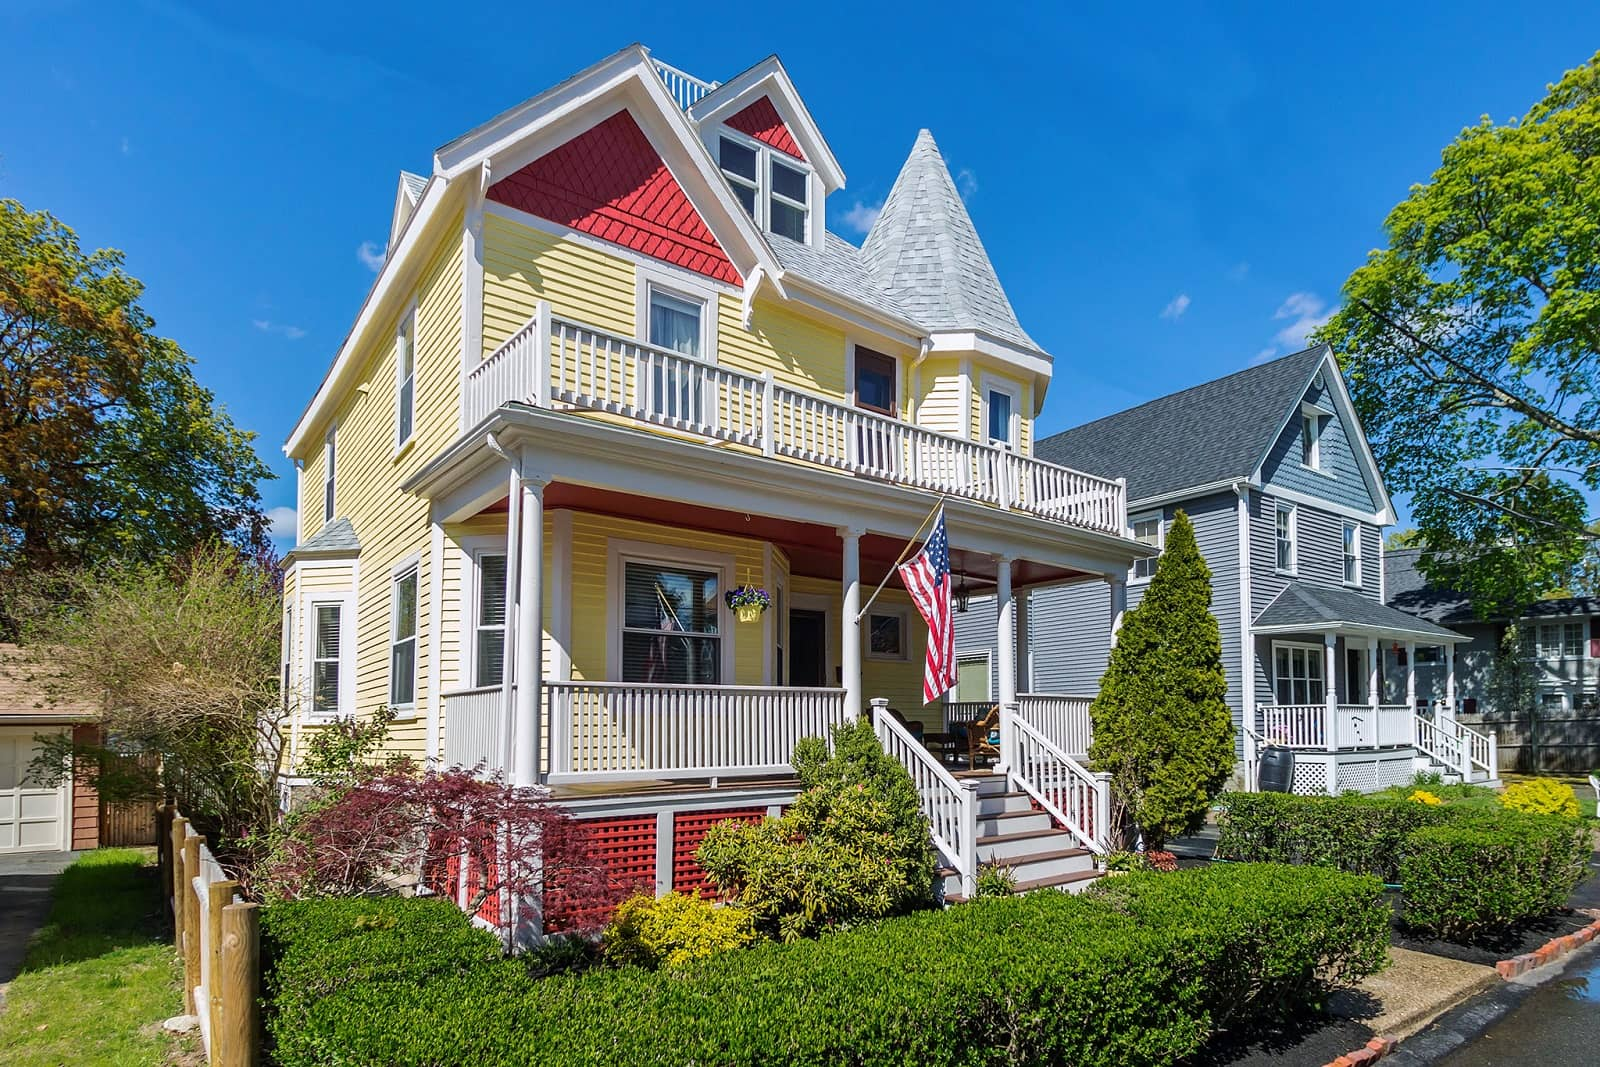 Real Estate Photography in Boston - MA - USA - Front View